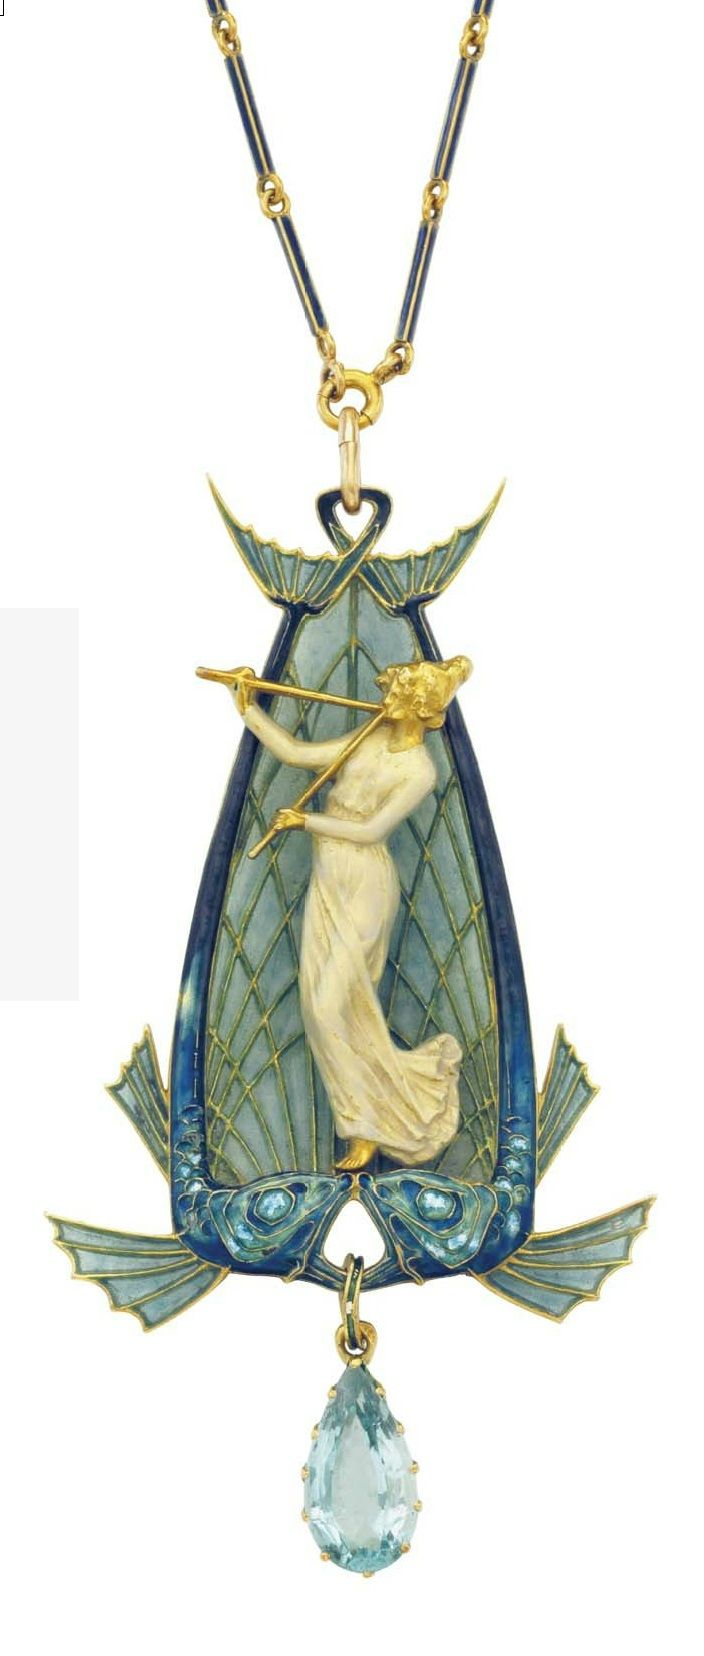 RENÉ LALIQUE - AN ART NOUVEAU ENAMEL AND AQUAMARINE PENDANT, CIRCA 1900. The pendant designed as two enamel and plique-a-jour fish suspending an aquamarine, centring upon a sculpted gold woman in a white enamel dress, playing two fluted instruments, to the blue enamel and gold link eckchain, mounted in gold, Pendant signed Lalique.